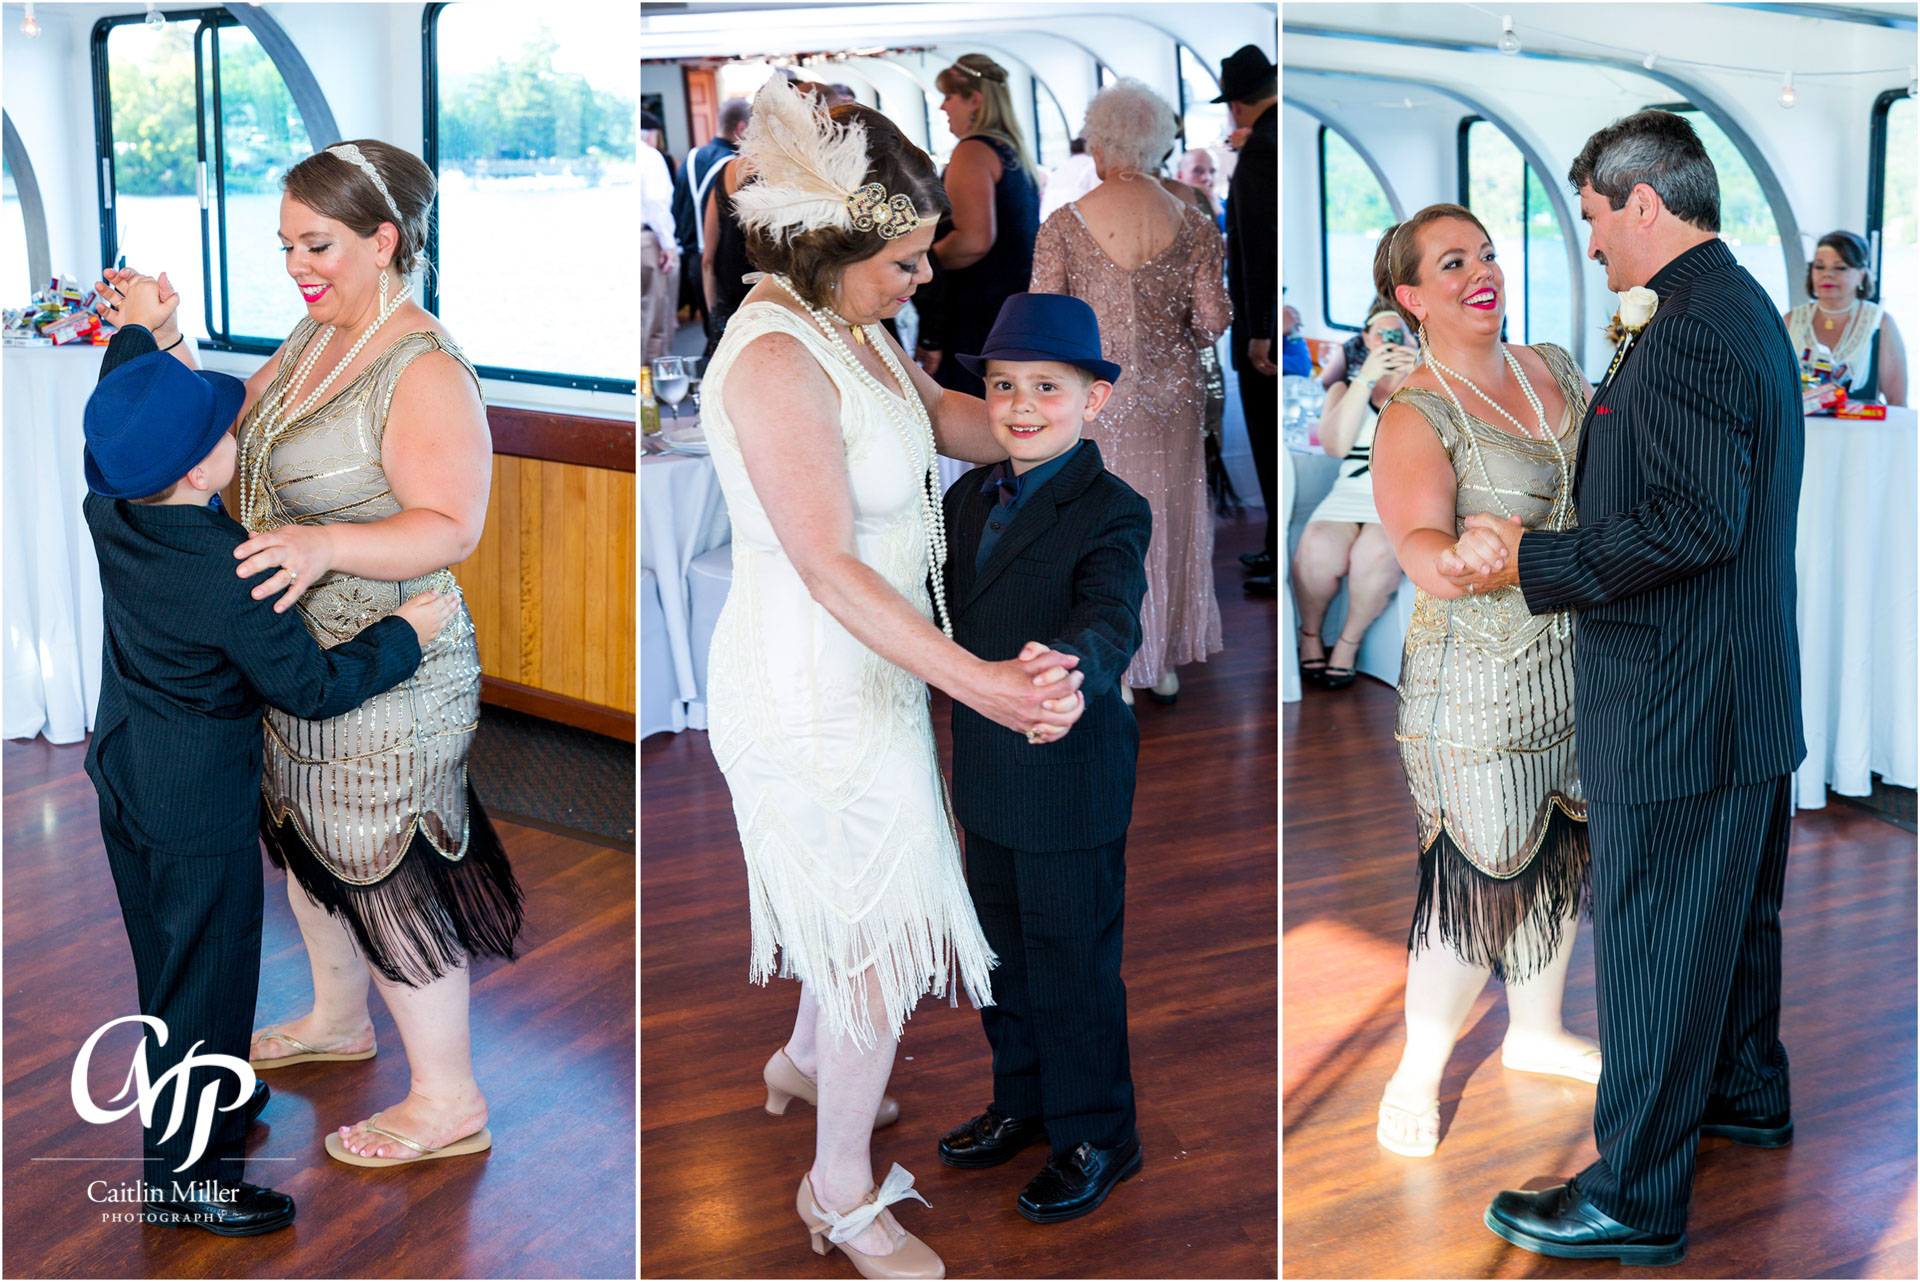 bombard-27.jpg from Jan and Robert's vow renewal on shoreline Cruise's Adirondac Boat on Lake George, NY by Saratoga Wedding Photographer Caitlin Miller Photography. Lake George Wedding Photographer. Stamford wedding photographer. Albany wedding photographer. Shoreline Cruises Wedding Photographer. Saratoga Wedding Photographer